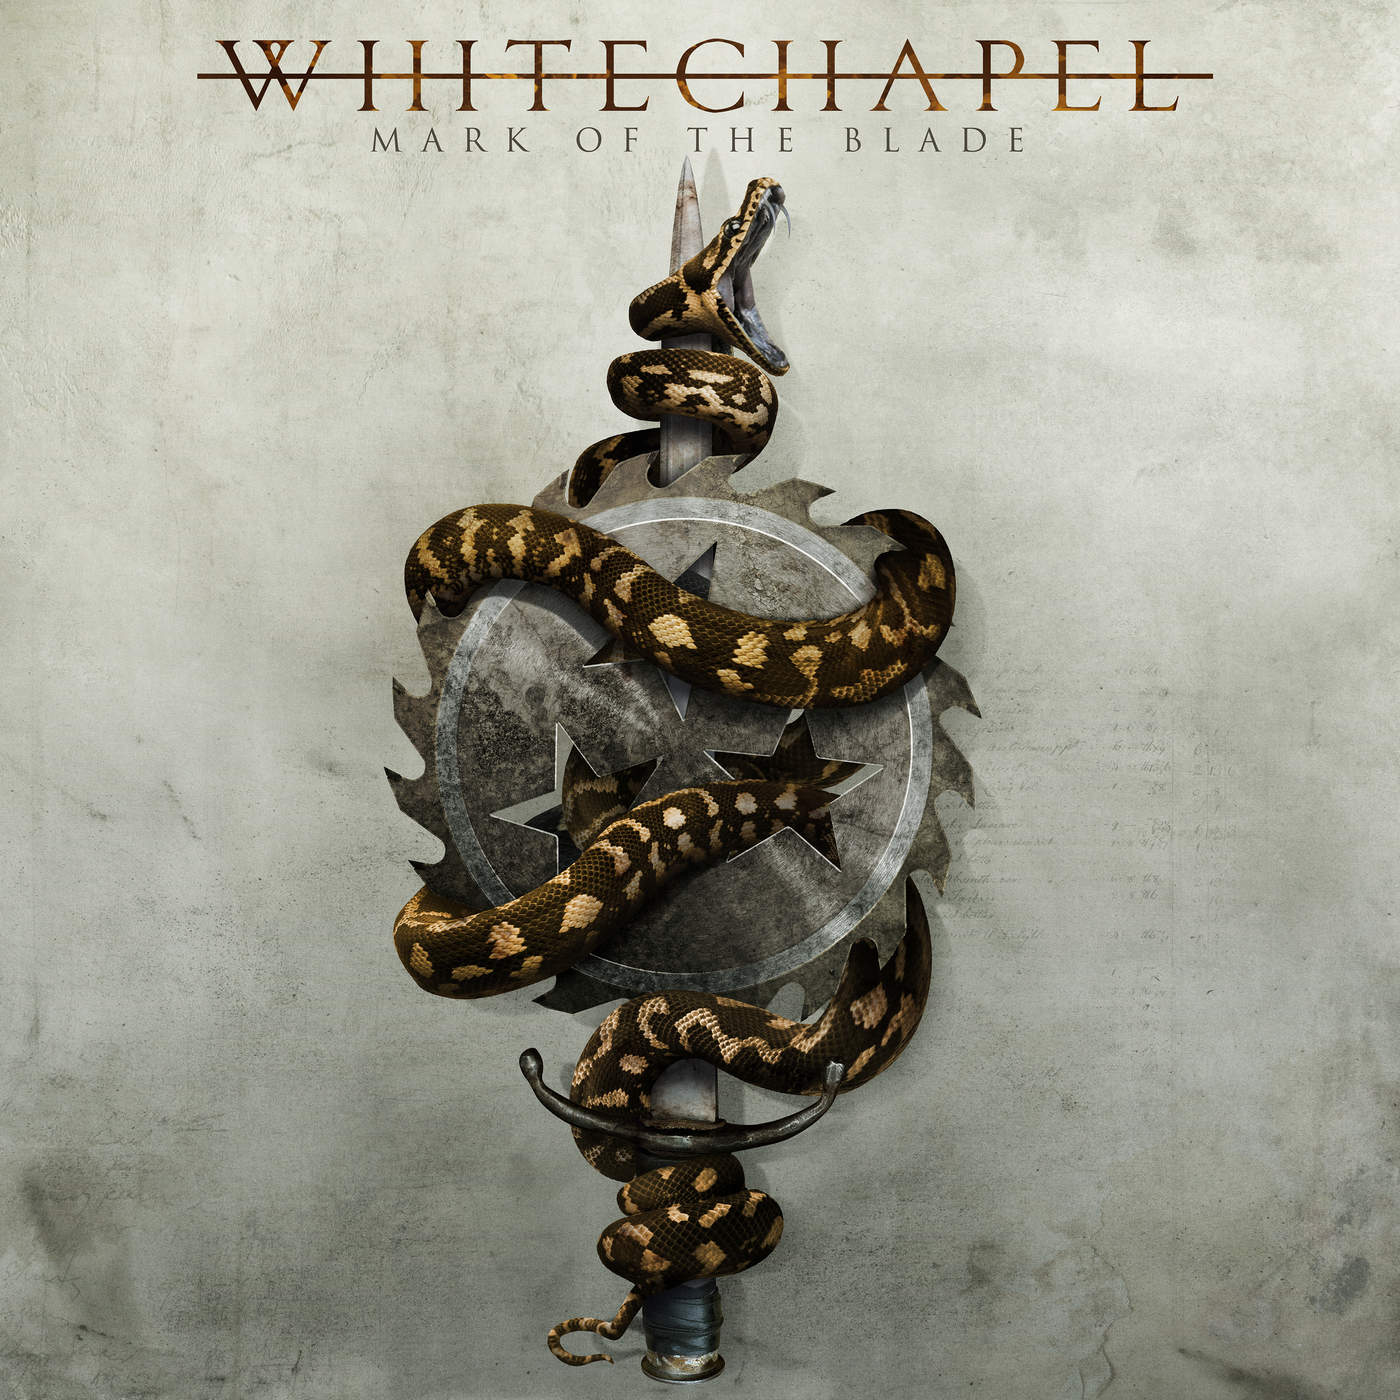 Download torrent Whitechapel - Mark of the Blade (Single) (2016)